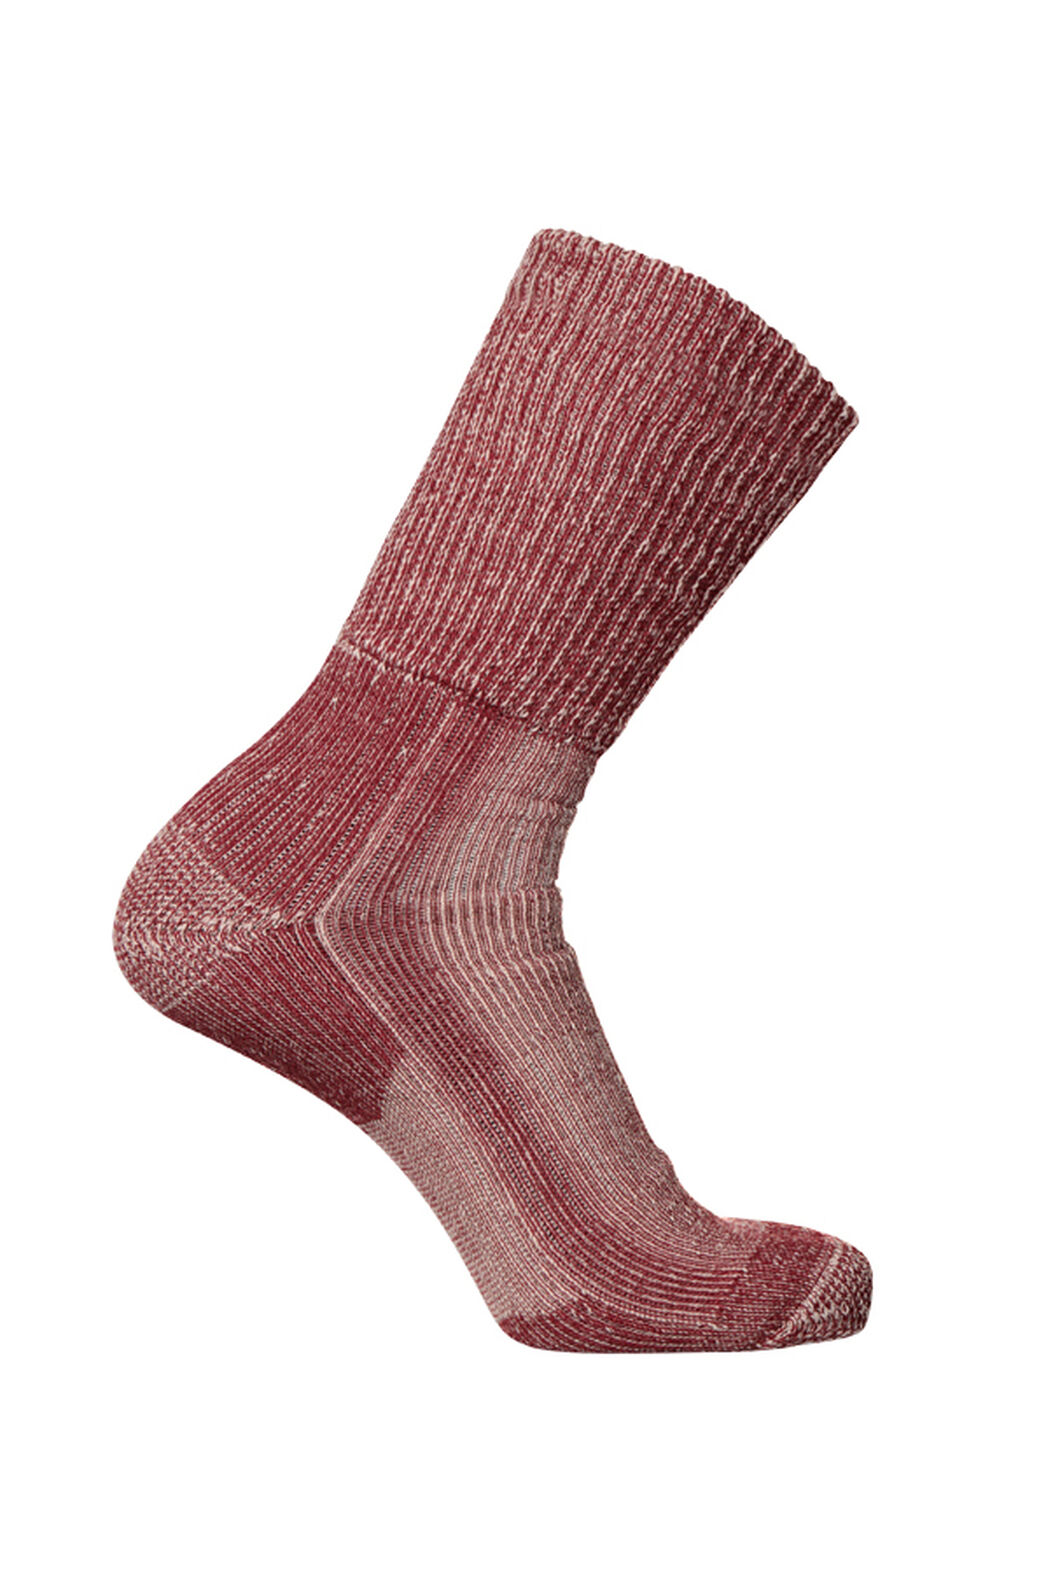 Macpac Winter Hiker Socks, Red, hi-res